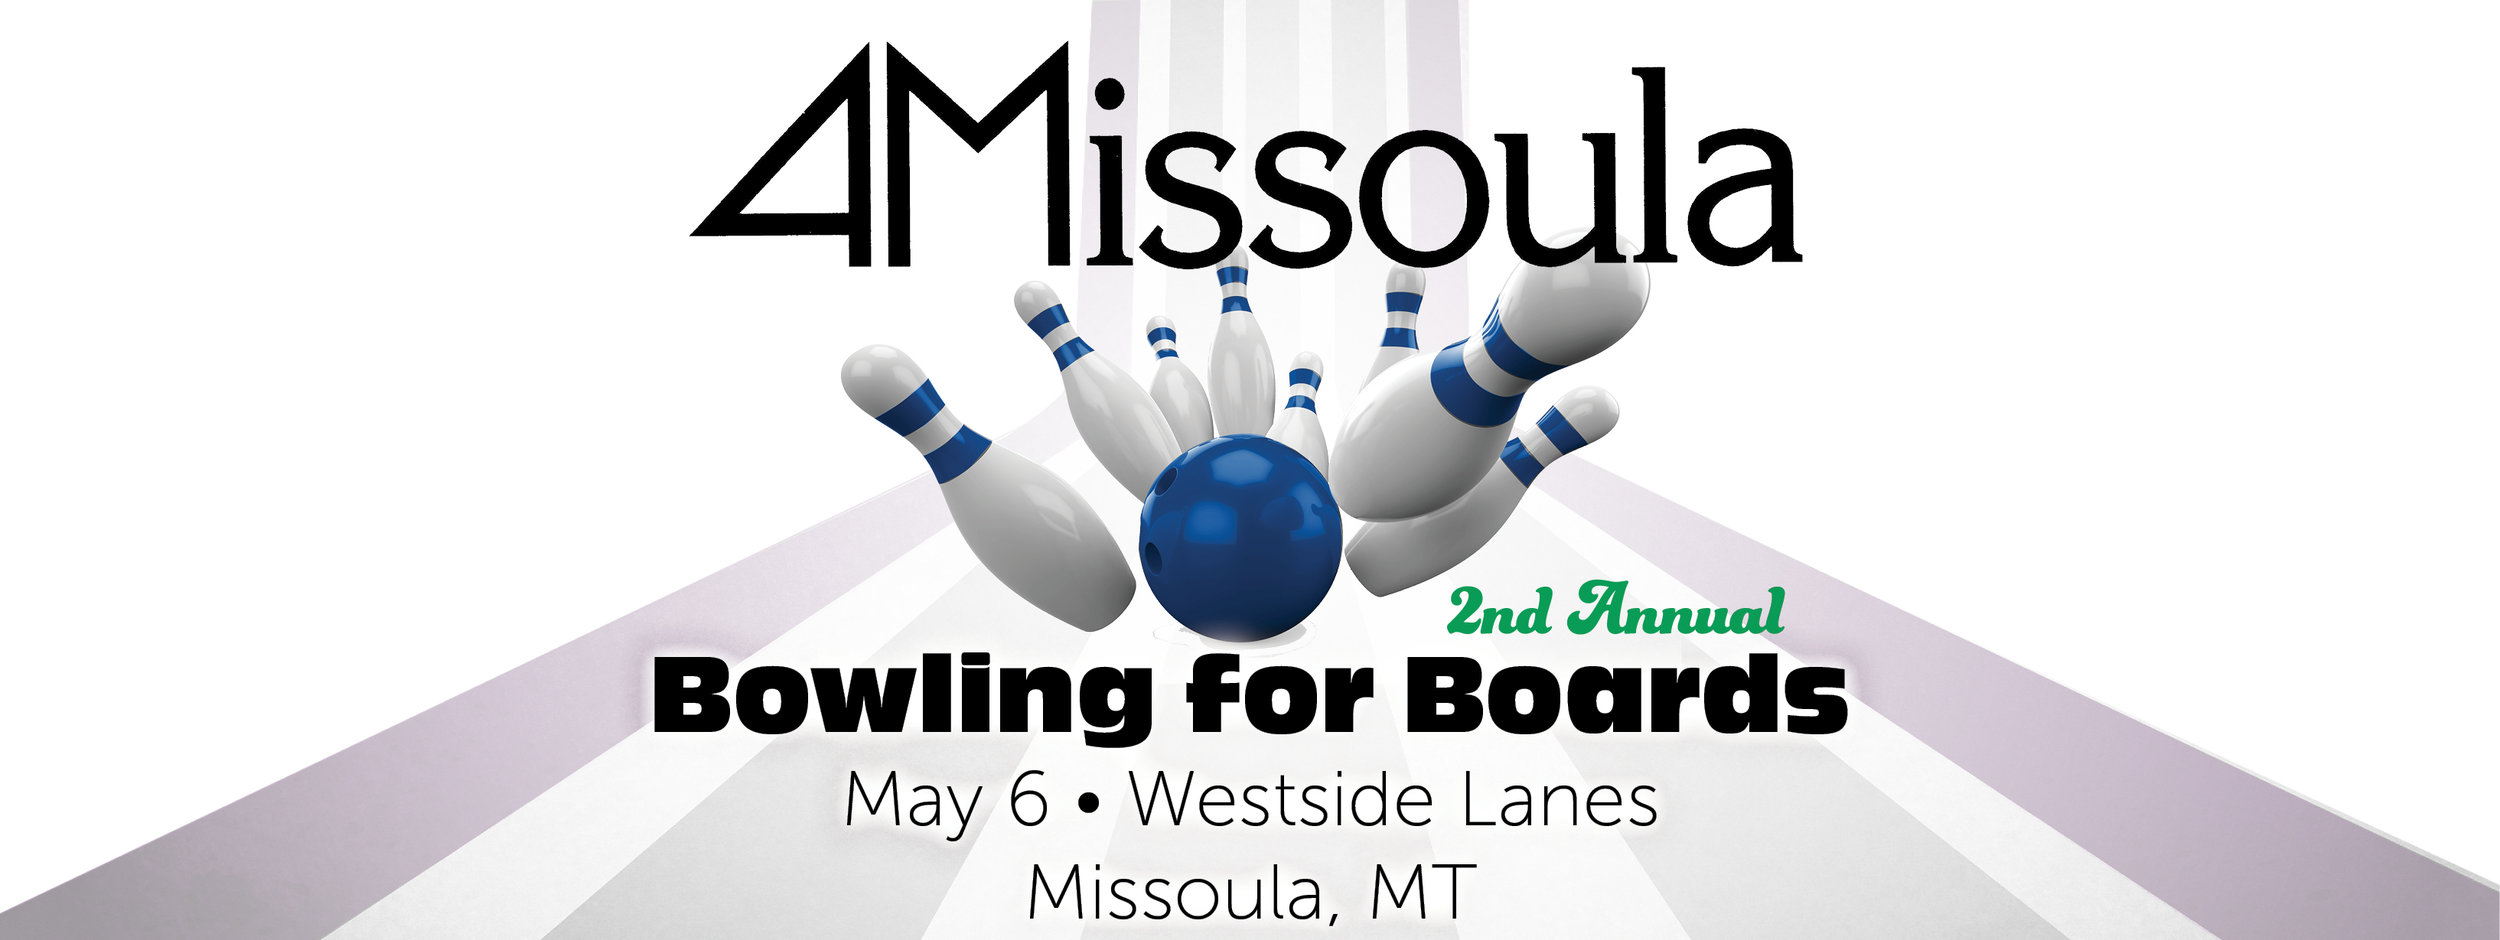 Bowling for Boards 2017 v3.jpg